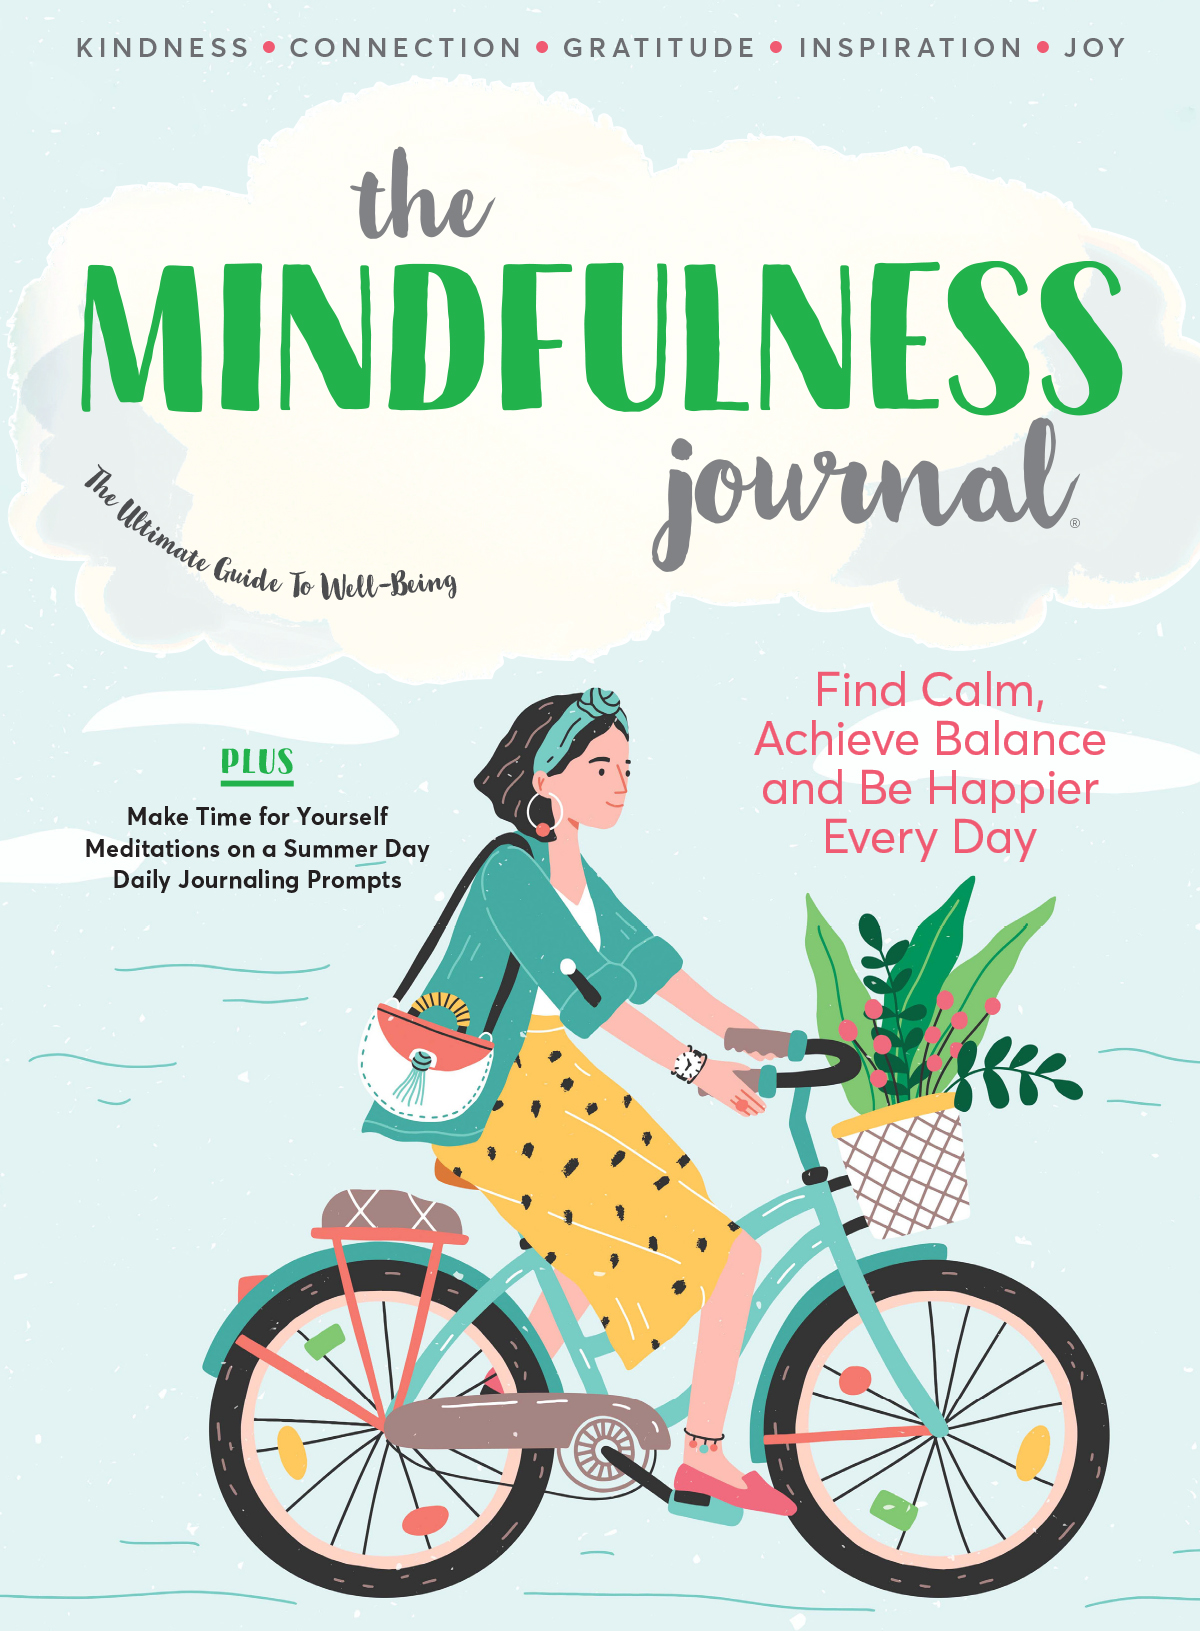 Best Price for Mindfulness Journal Subscription